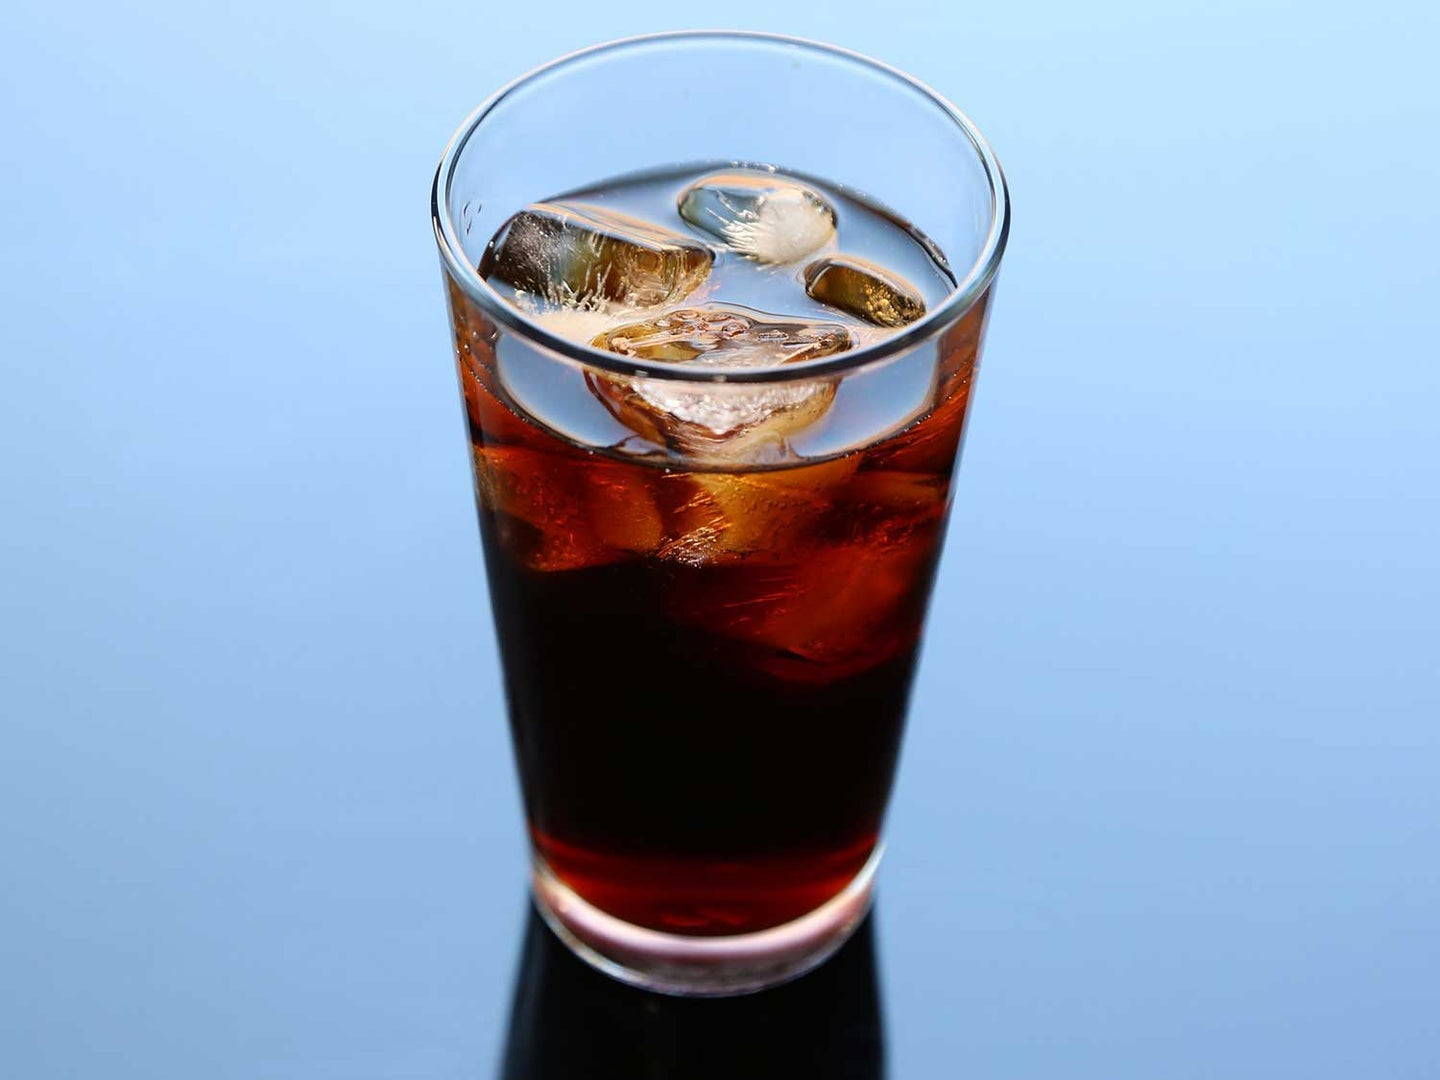 Cup of cold brew coffee with ice